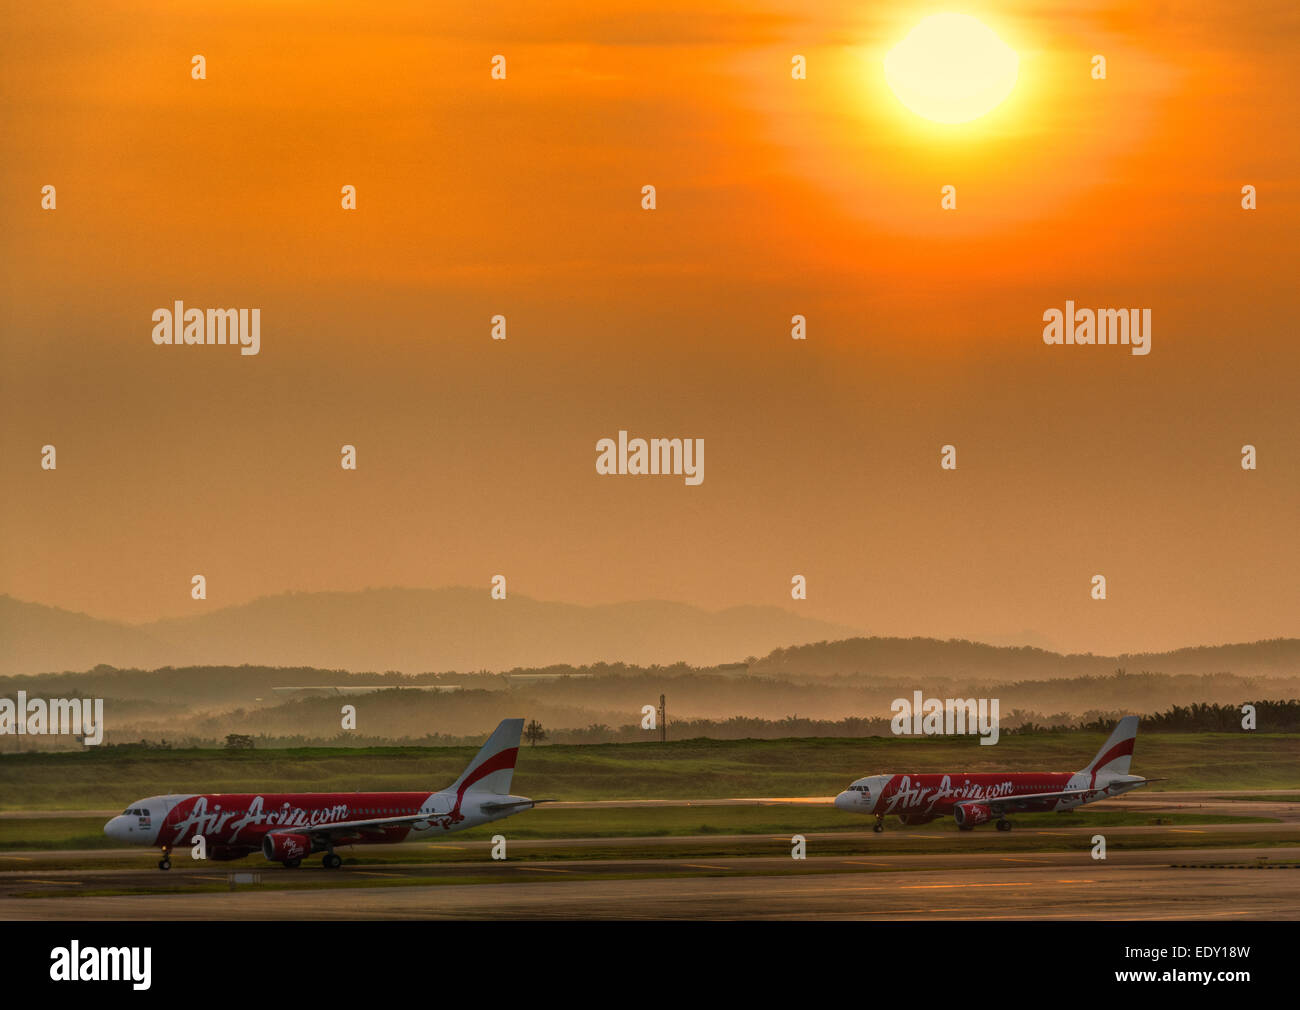 Air Asia planes airplanes aircraft rolling on taxiway waiting for take-off at Kuala Lumpur International Airport - Stock Image